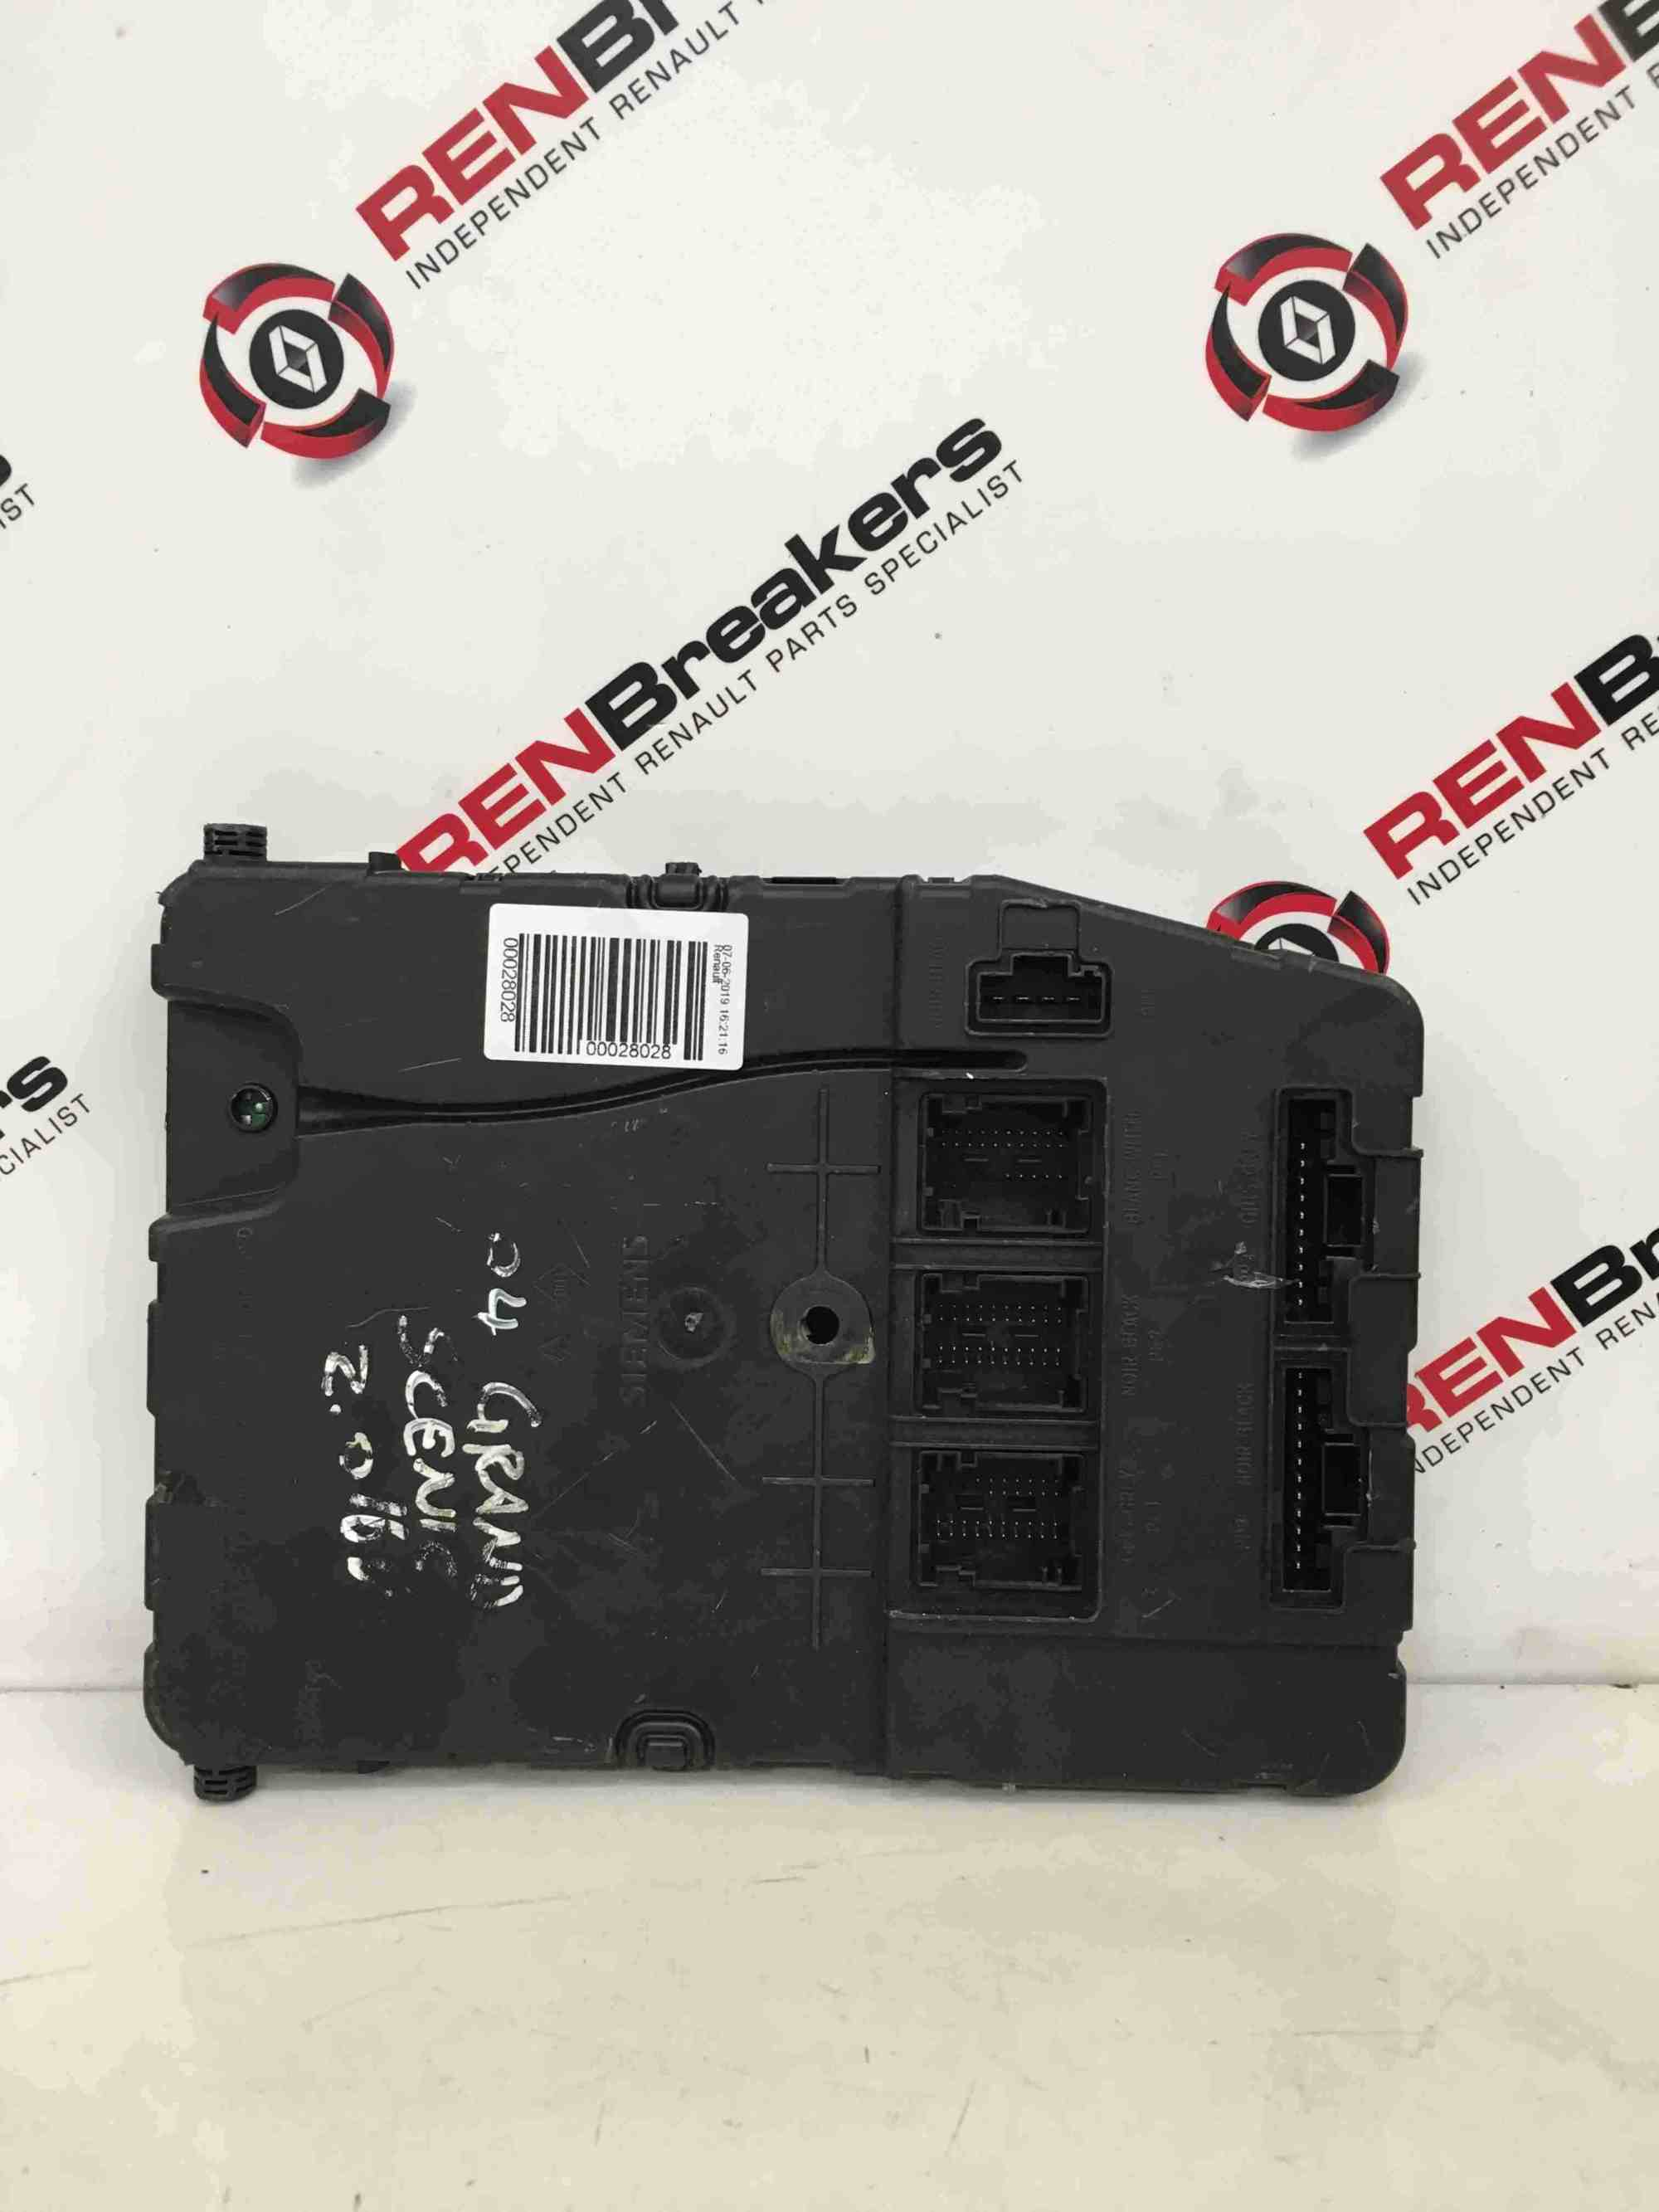 hight resolution of renault megane scenic 2003 2009 2 0 immobiliser uch bcm fuse box 8200351186 store renault breakers used renault car parts spares specialist